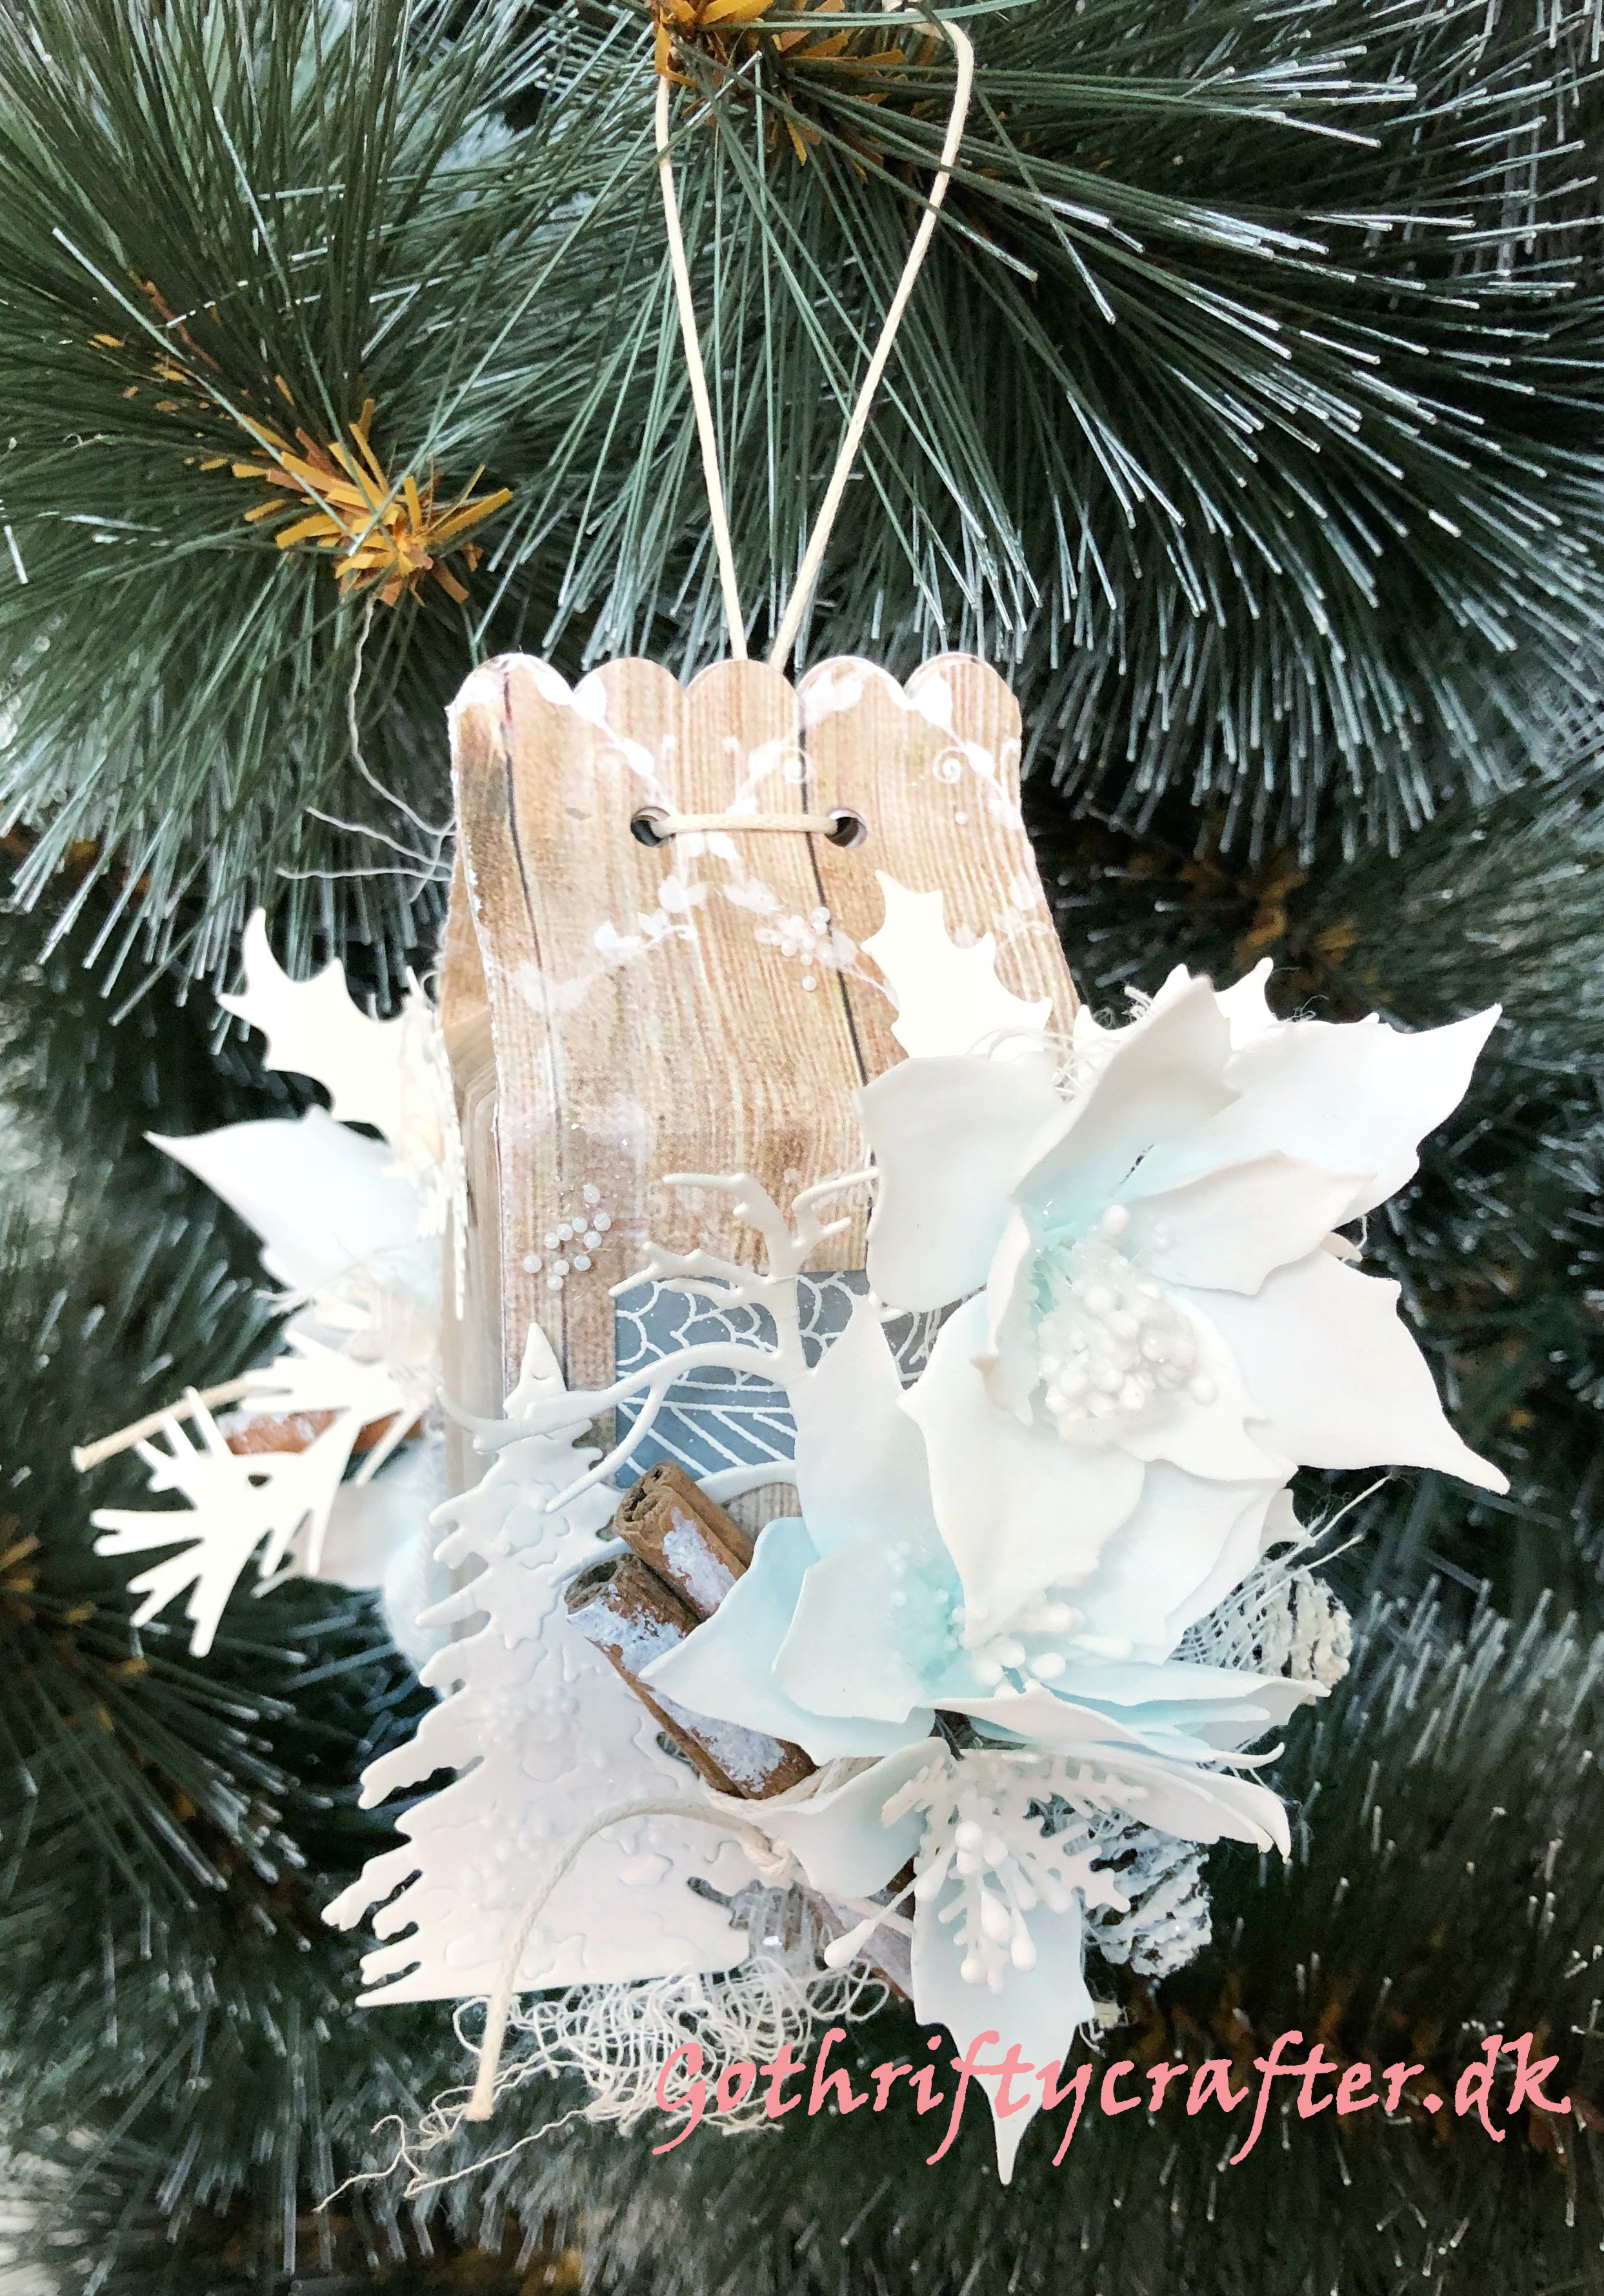 Gothriftycrafter Fabrika Decoru winter white snow foamiran flowers cinamon crystal wood house Christmas New year tree snow pasteJPG